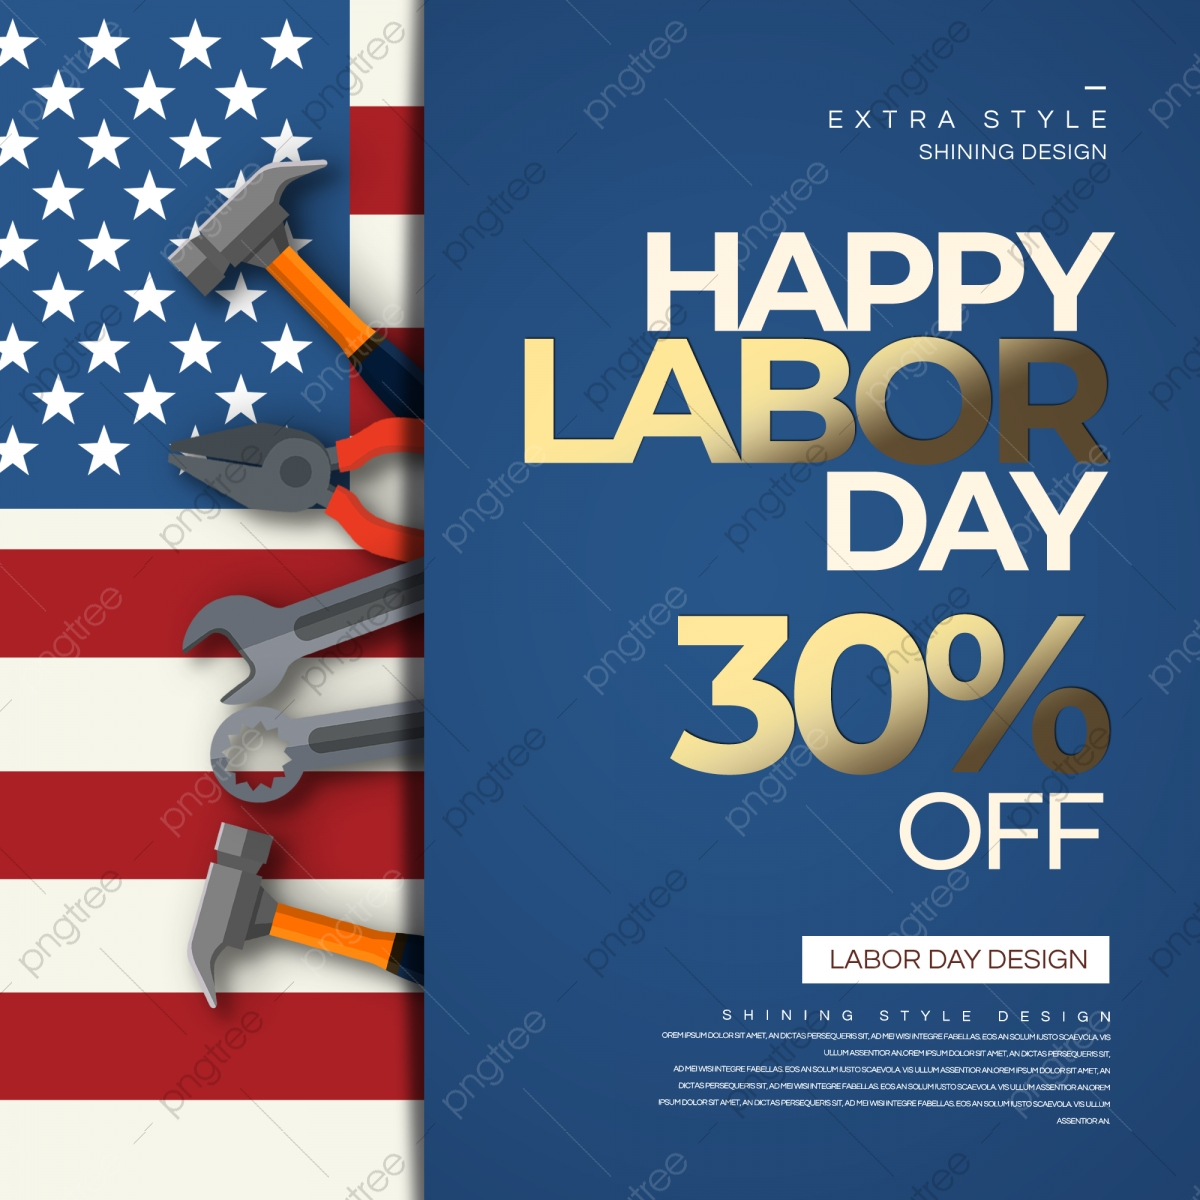 Trend Fashion Style American Labor Day Promotion Sns Template Download On Pngtree